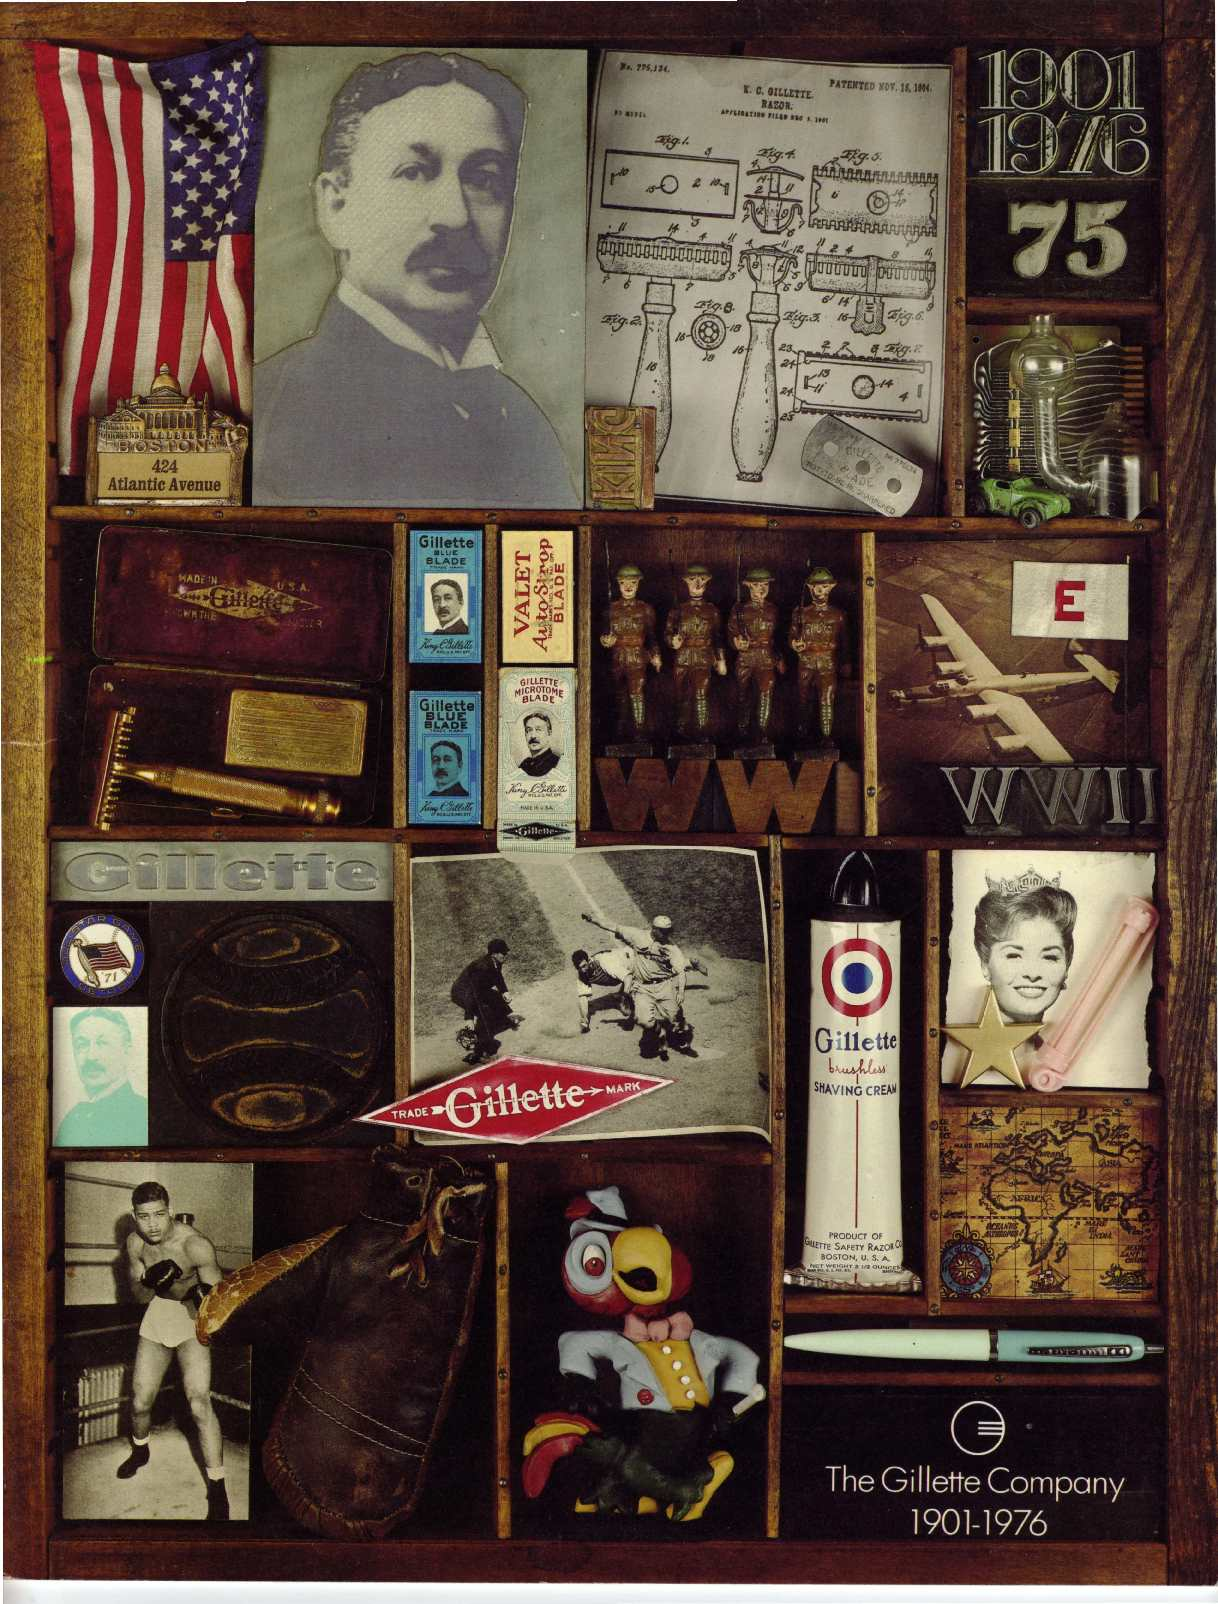 The Gillette Company 75 years, 1901-1976